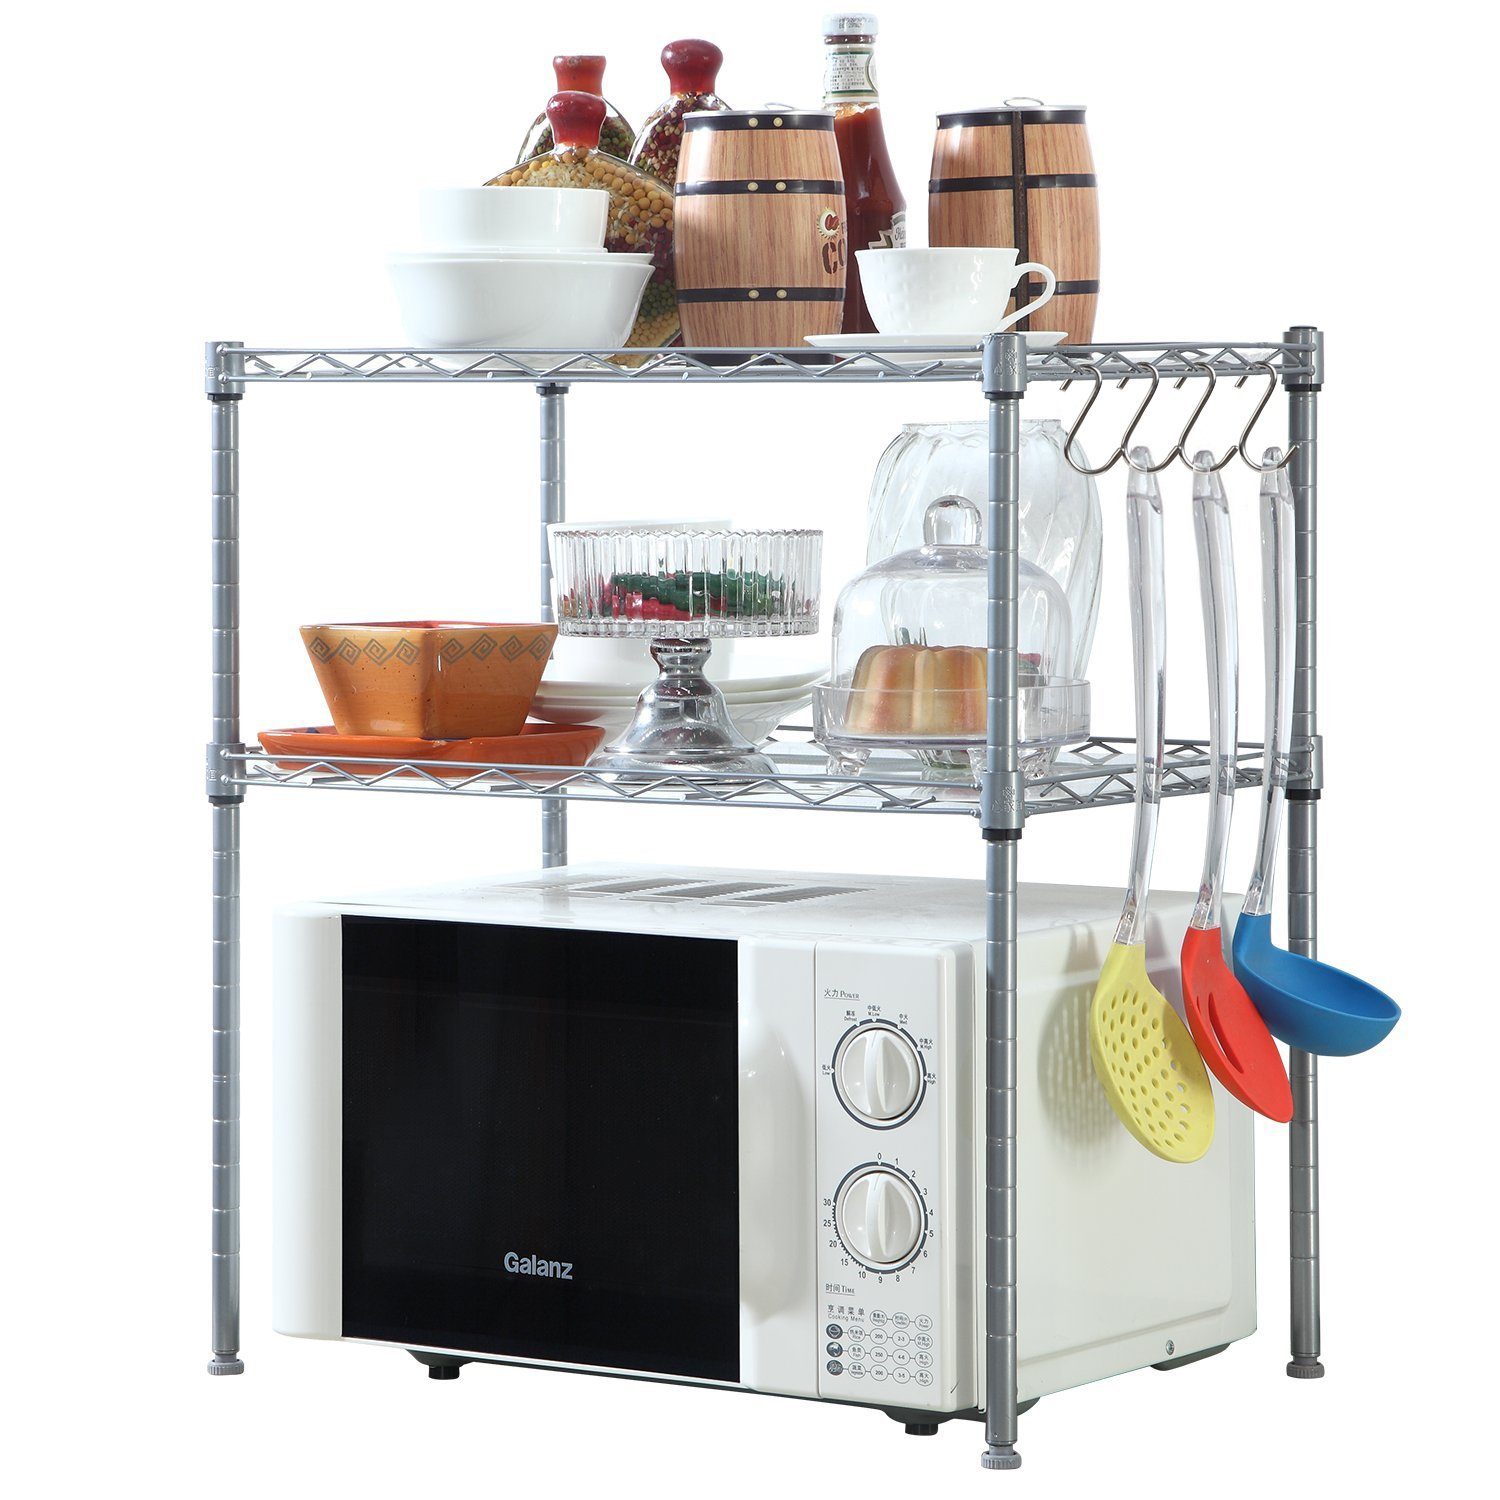 2 Tier Microwave Oven Rack Organiser Chrome with 2 Adjustable Shelves 8 Hooks